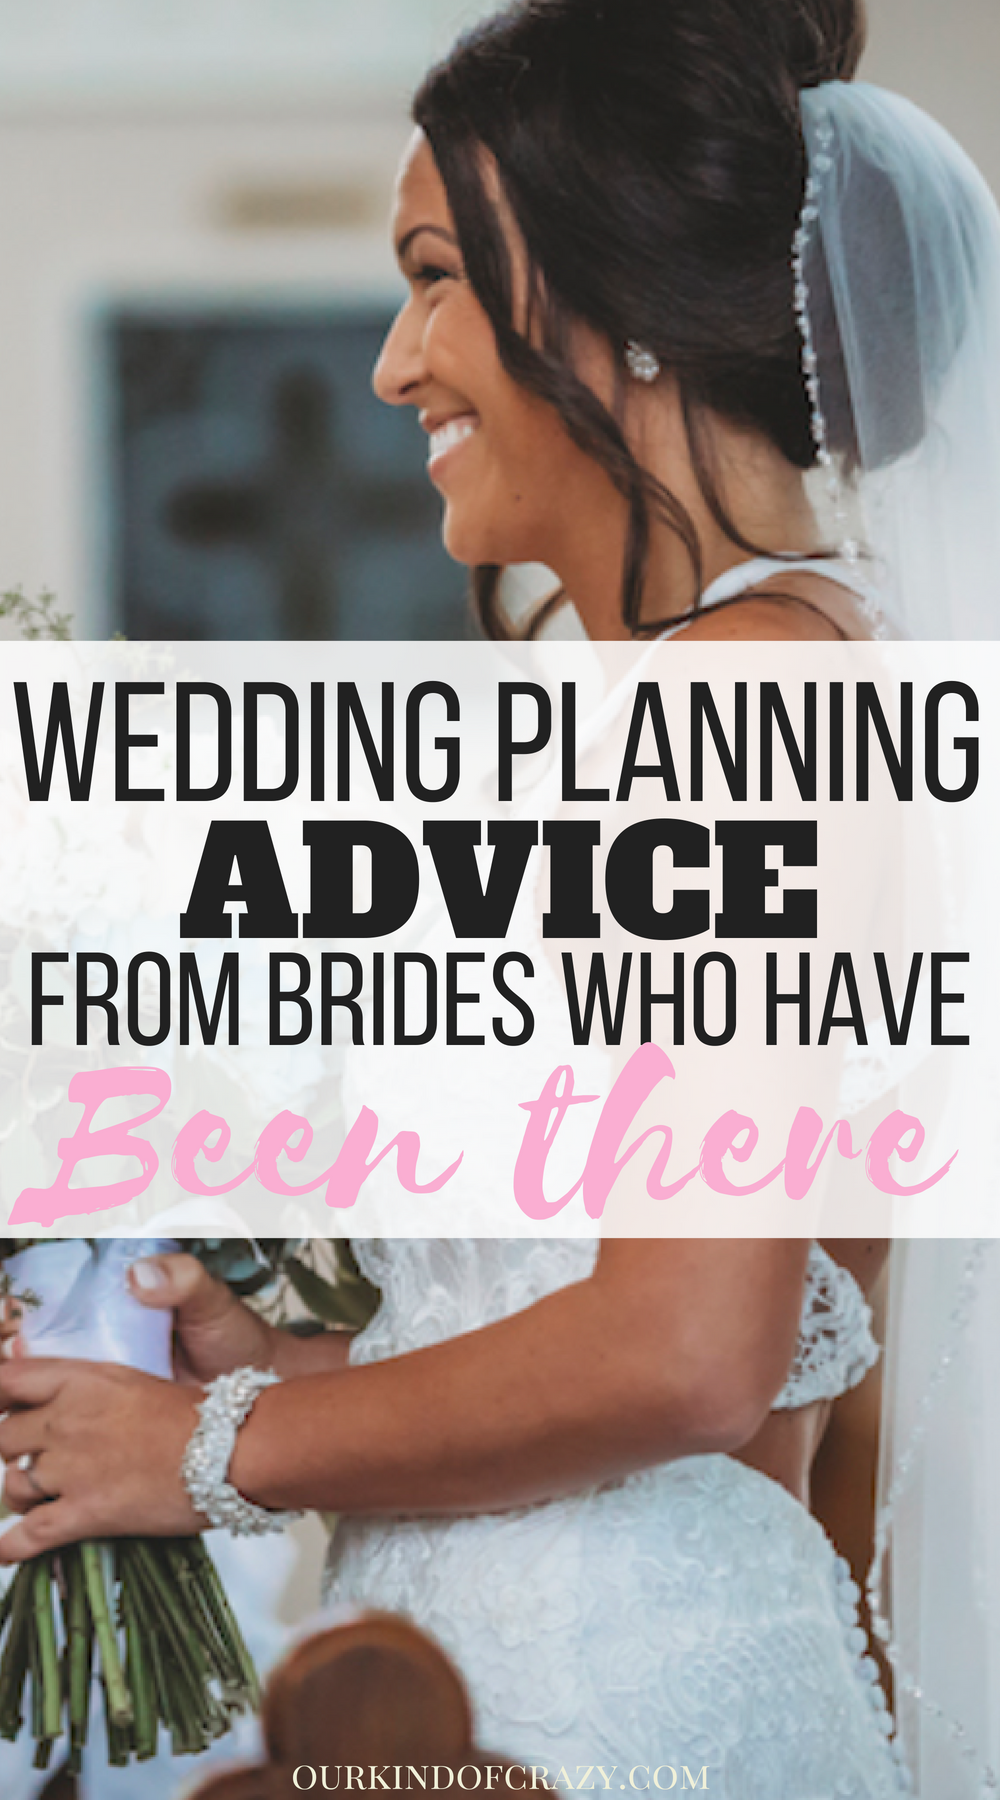 Wedding Planning Advice and Tips from Brides who have already married.  Golf Course Wedding.